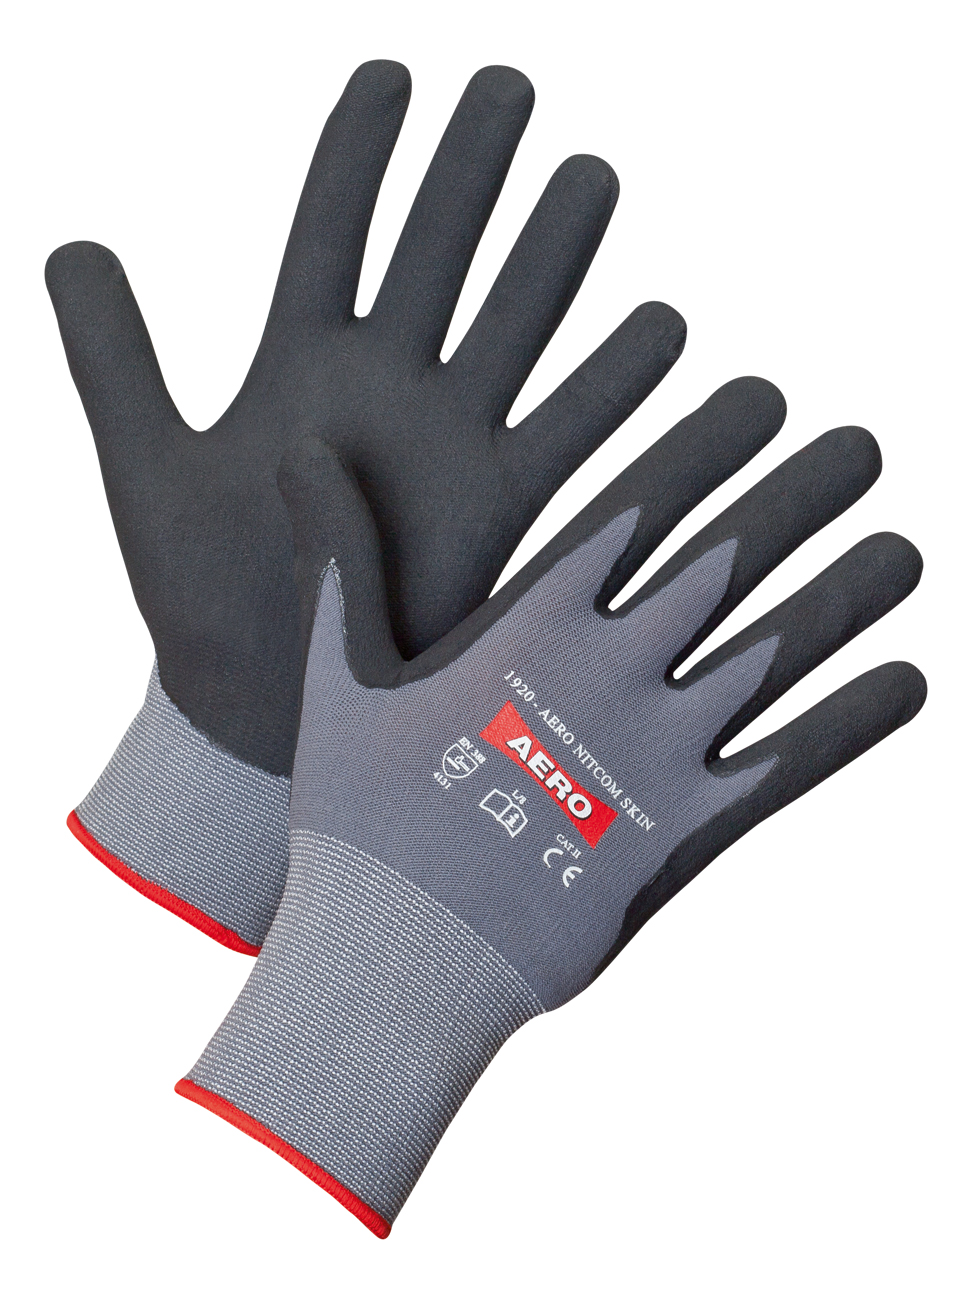 AERO Gloves NitroSkin Optimal 1920